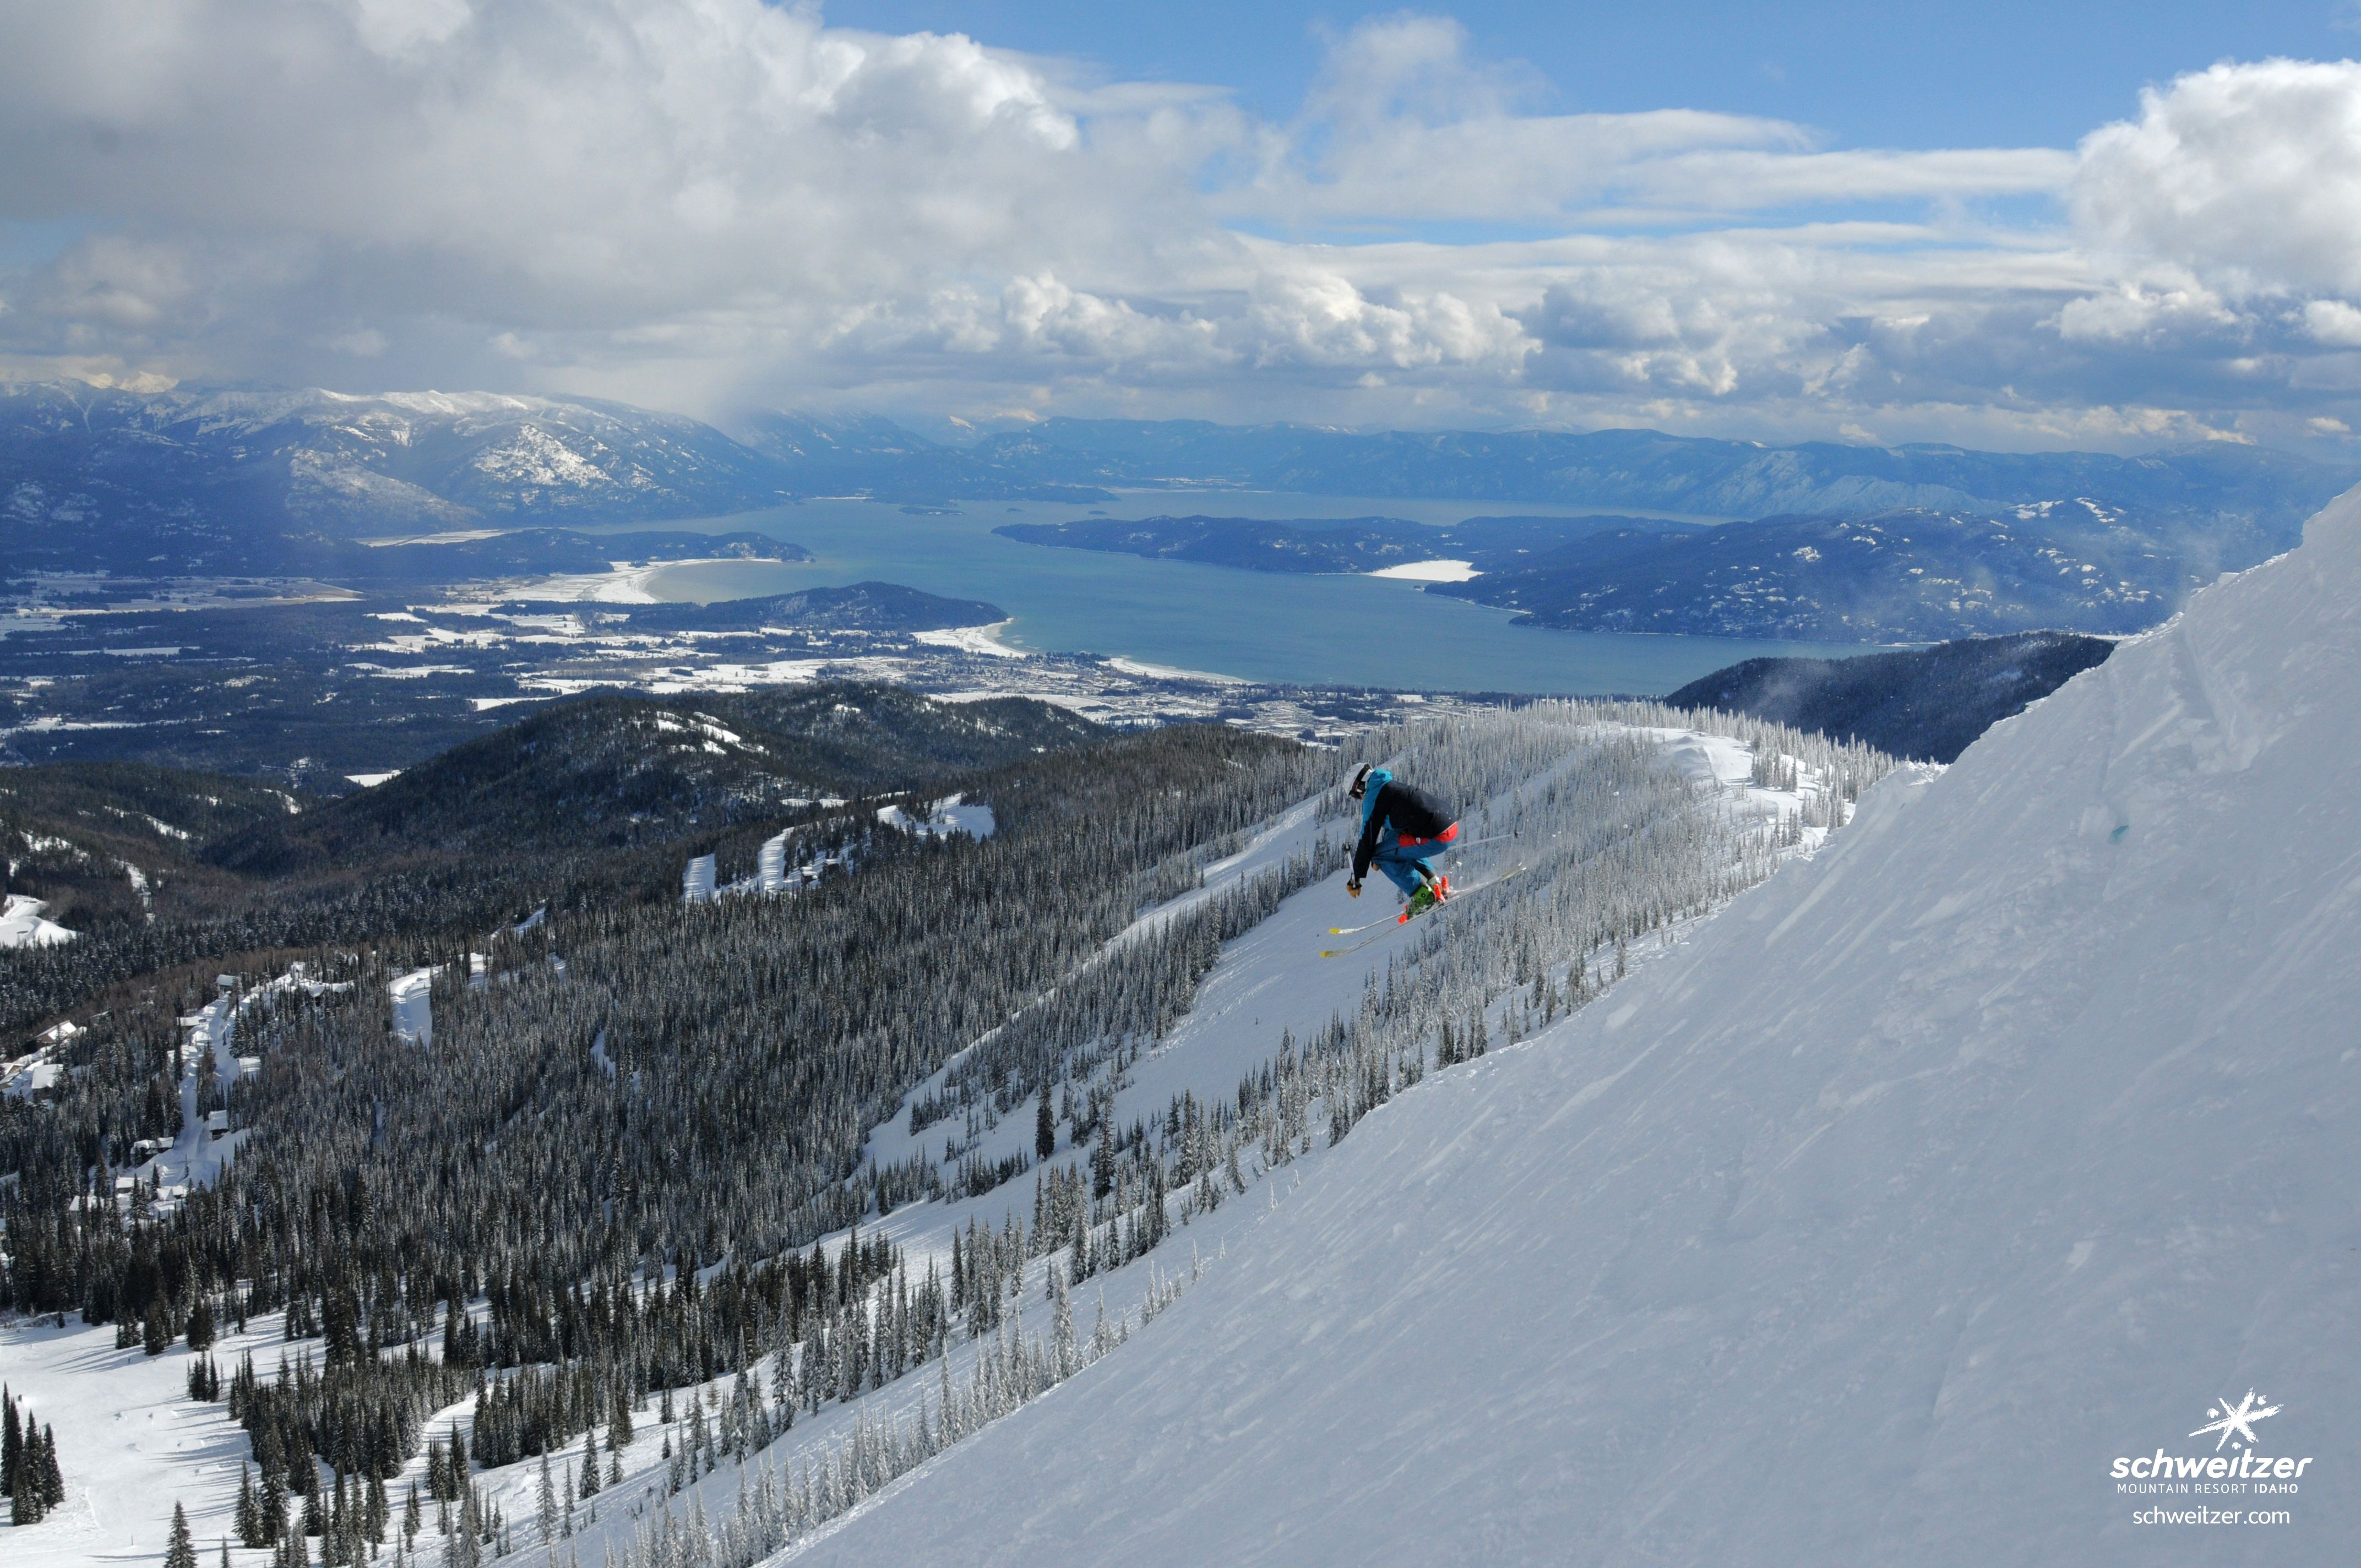 a perfect day | schweitzer mountain resort | skiing & snowboarding